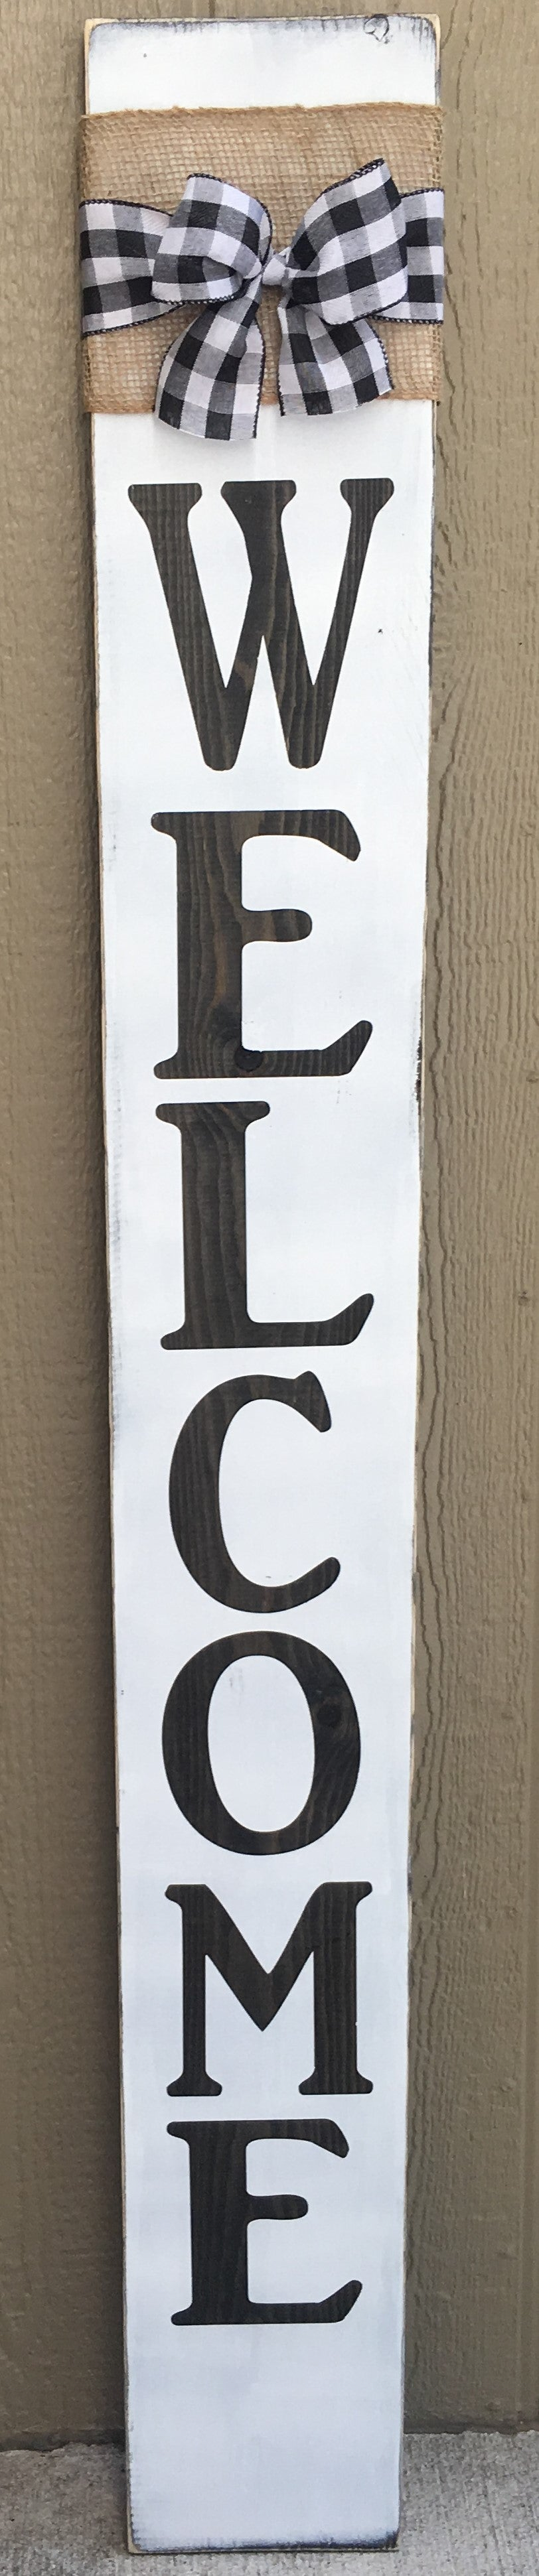 welcome porch sign class,